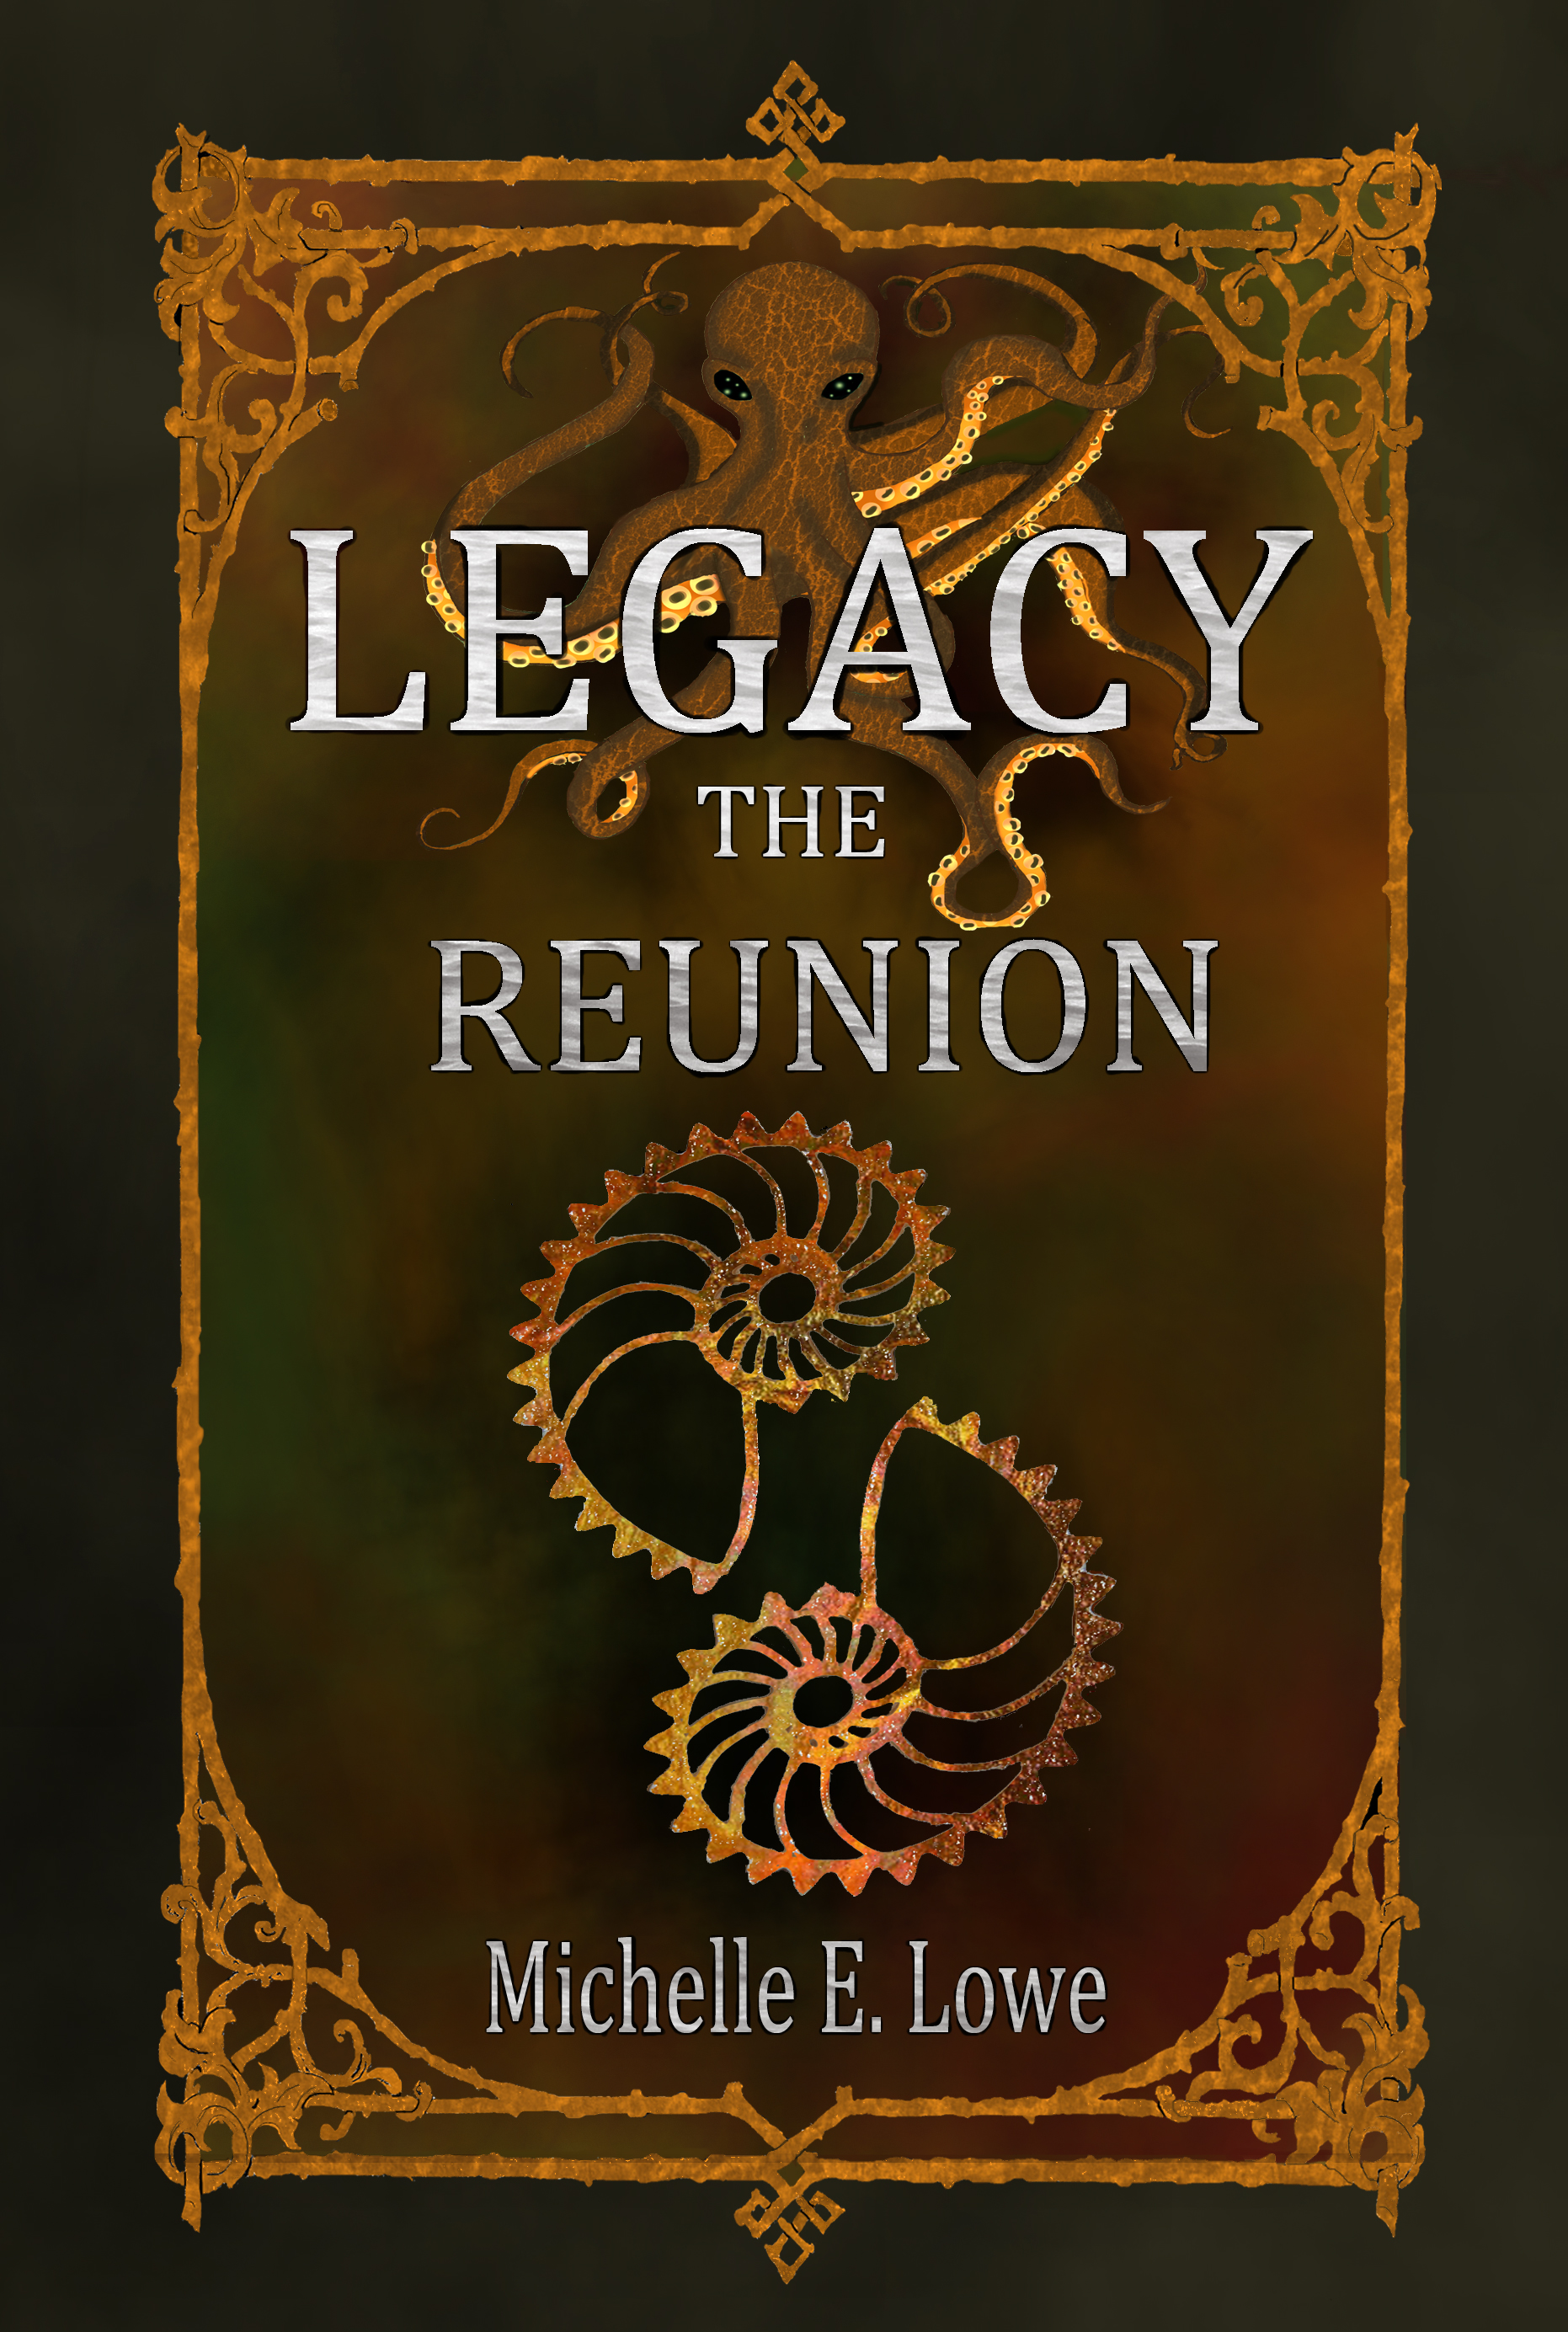 Legacy the reunion FRONT Book cover.jpg